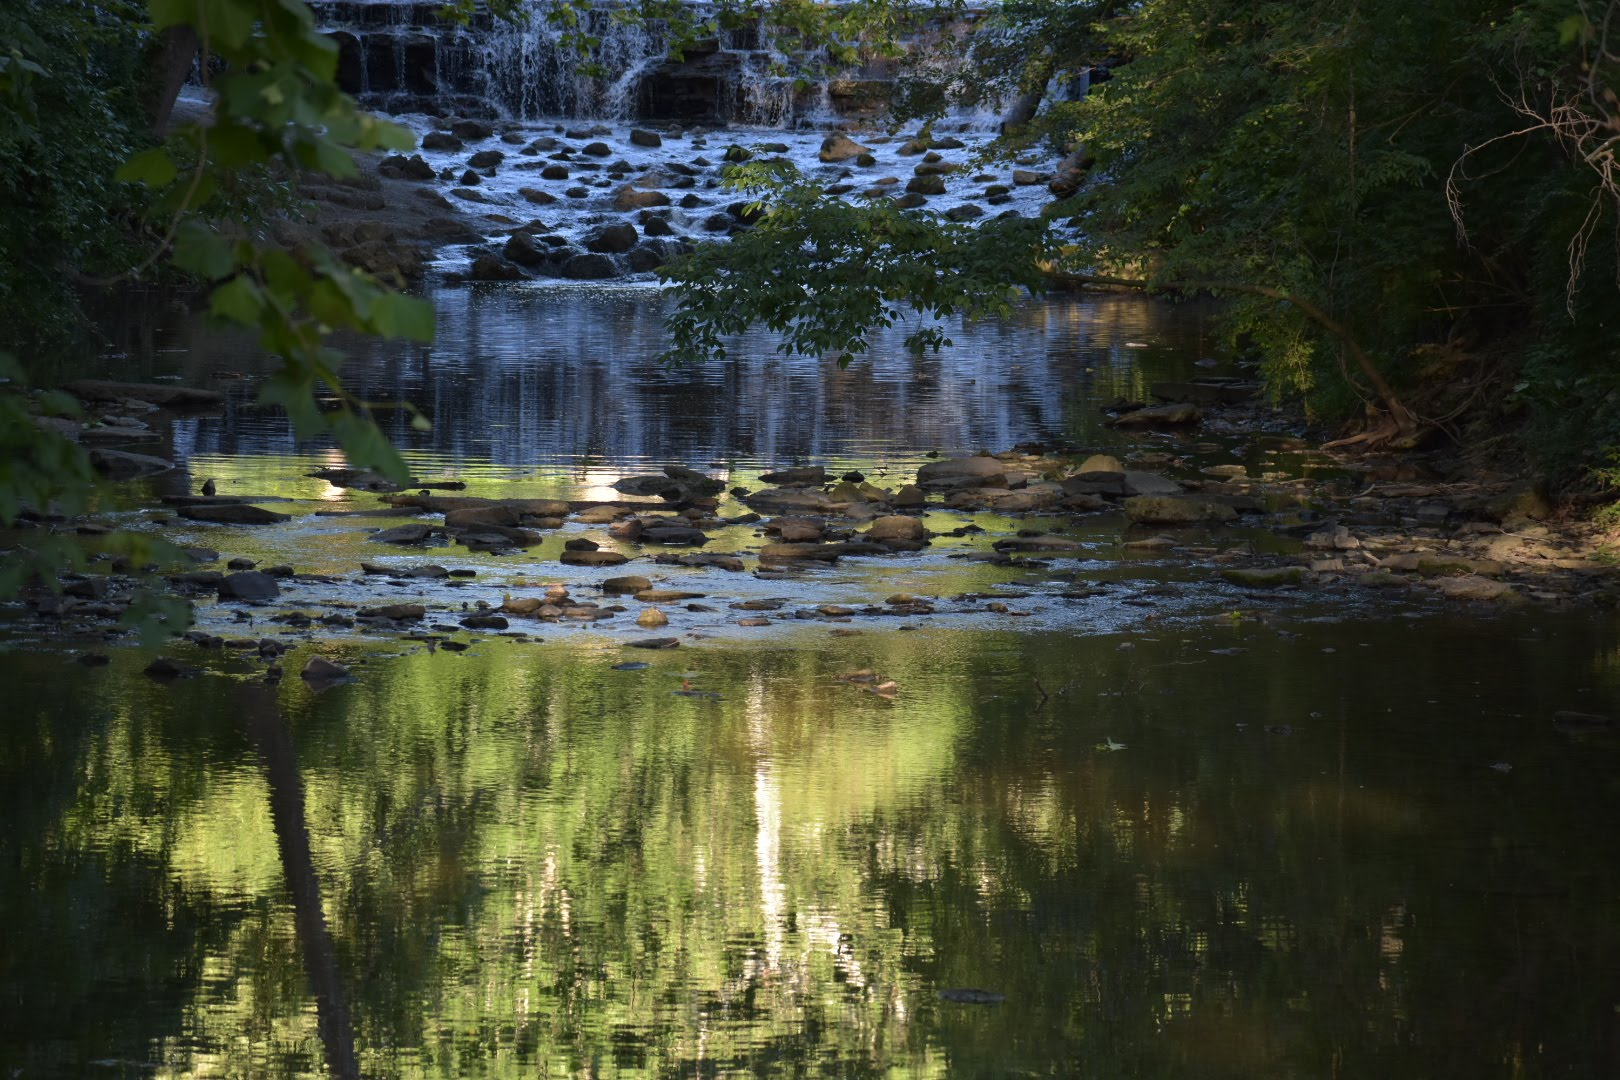 Through the leaves, the creek at Sharon Woods gives way to Buckeye Falls in the background.